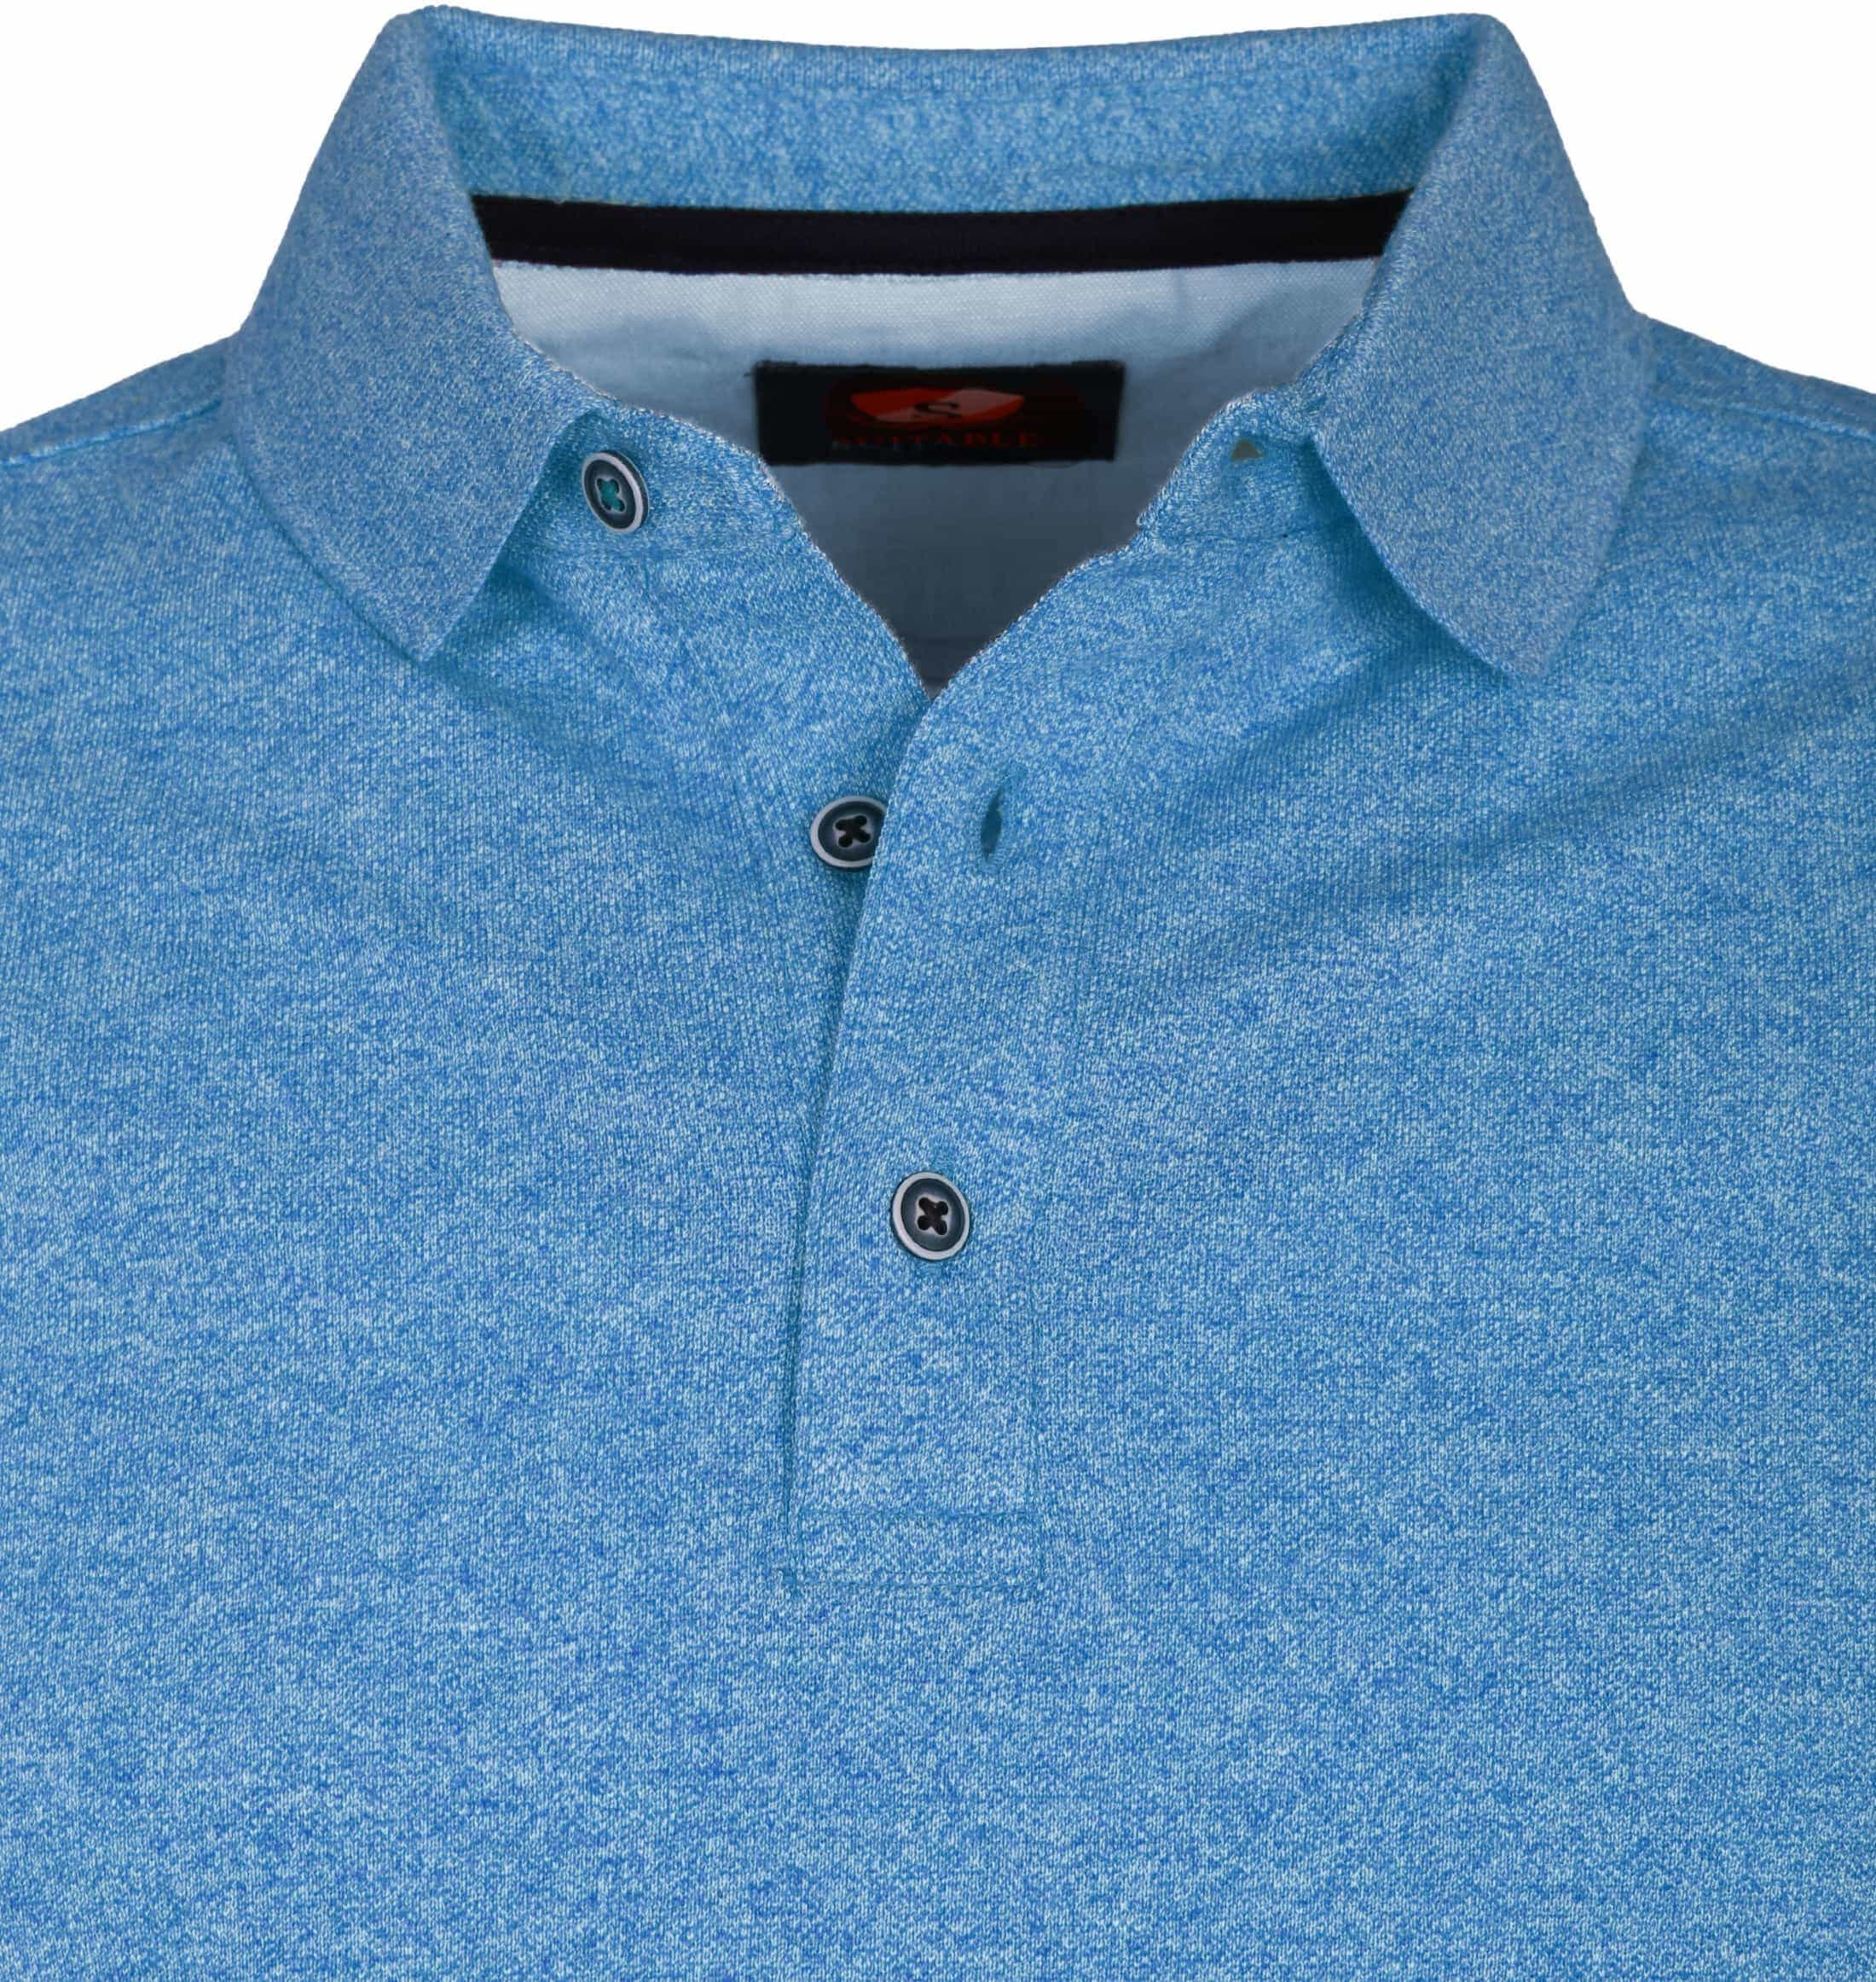 Suitable Poloshirt Jaspe Hellblau foto 1